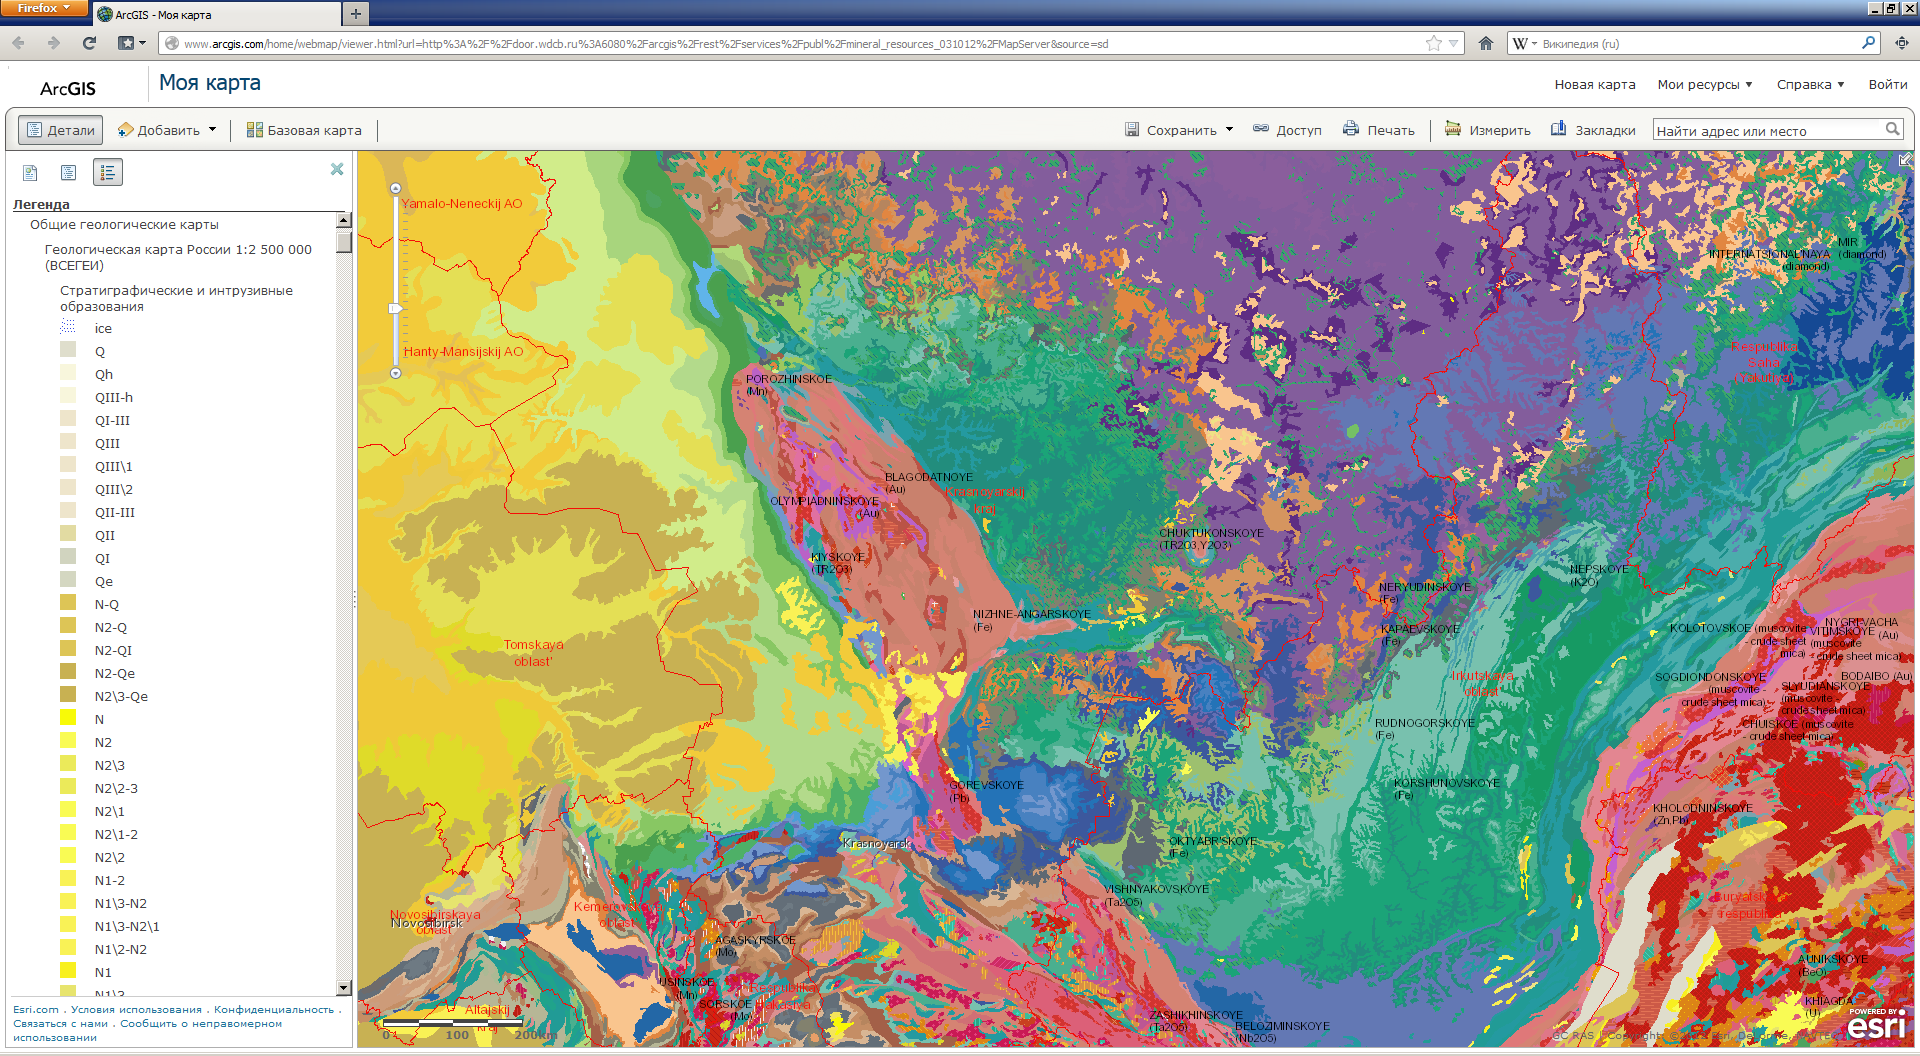 Cartographic web service: State Geological Map of Russia: Stratigraphic and Intrusive Formations (1:2 500 000)